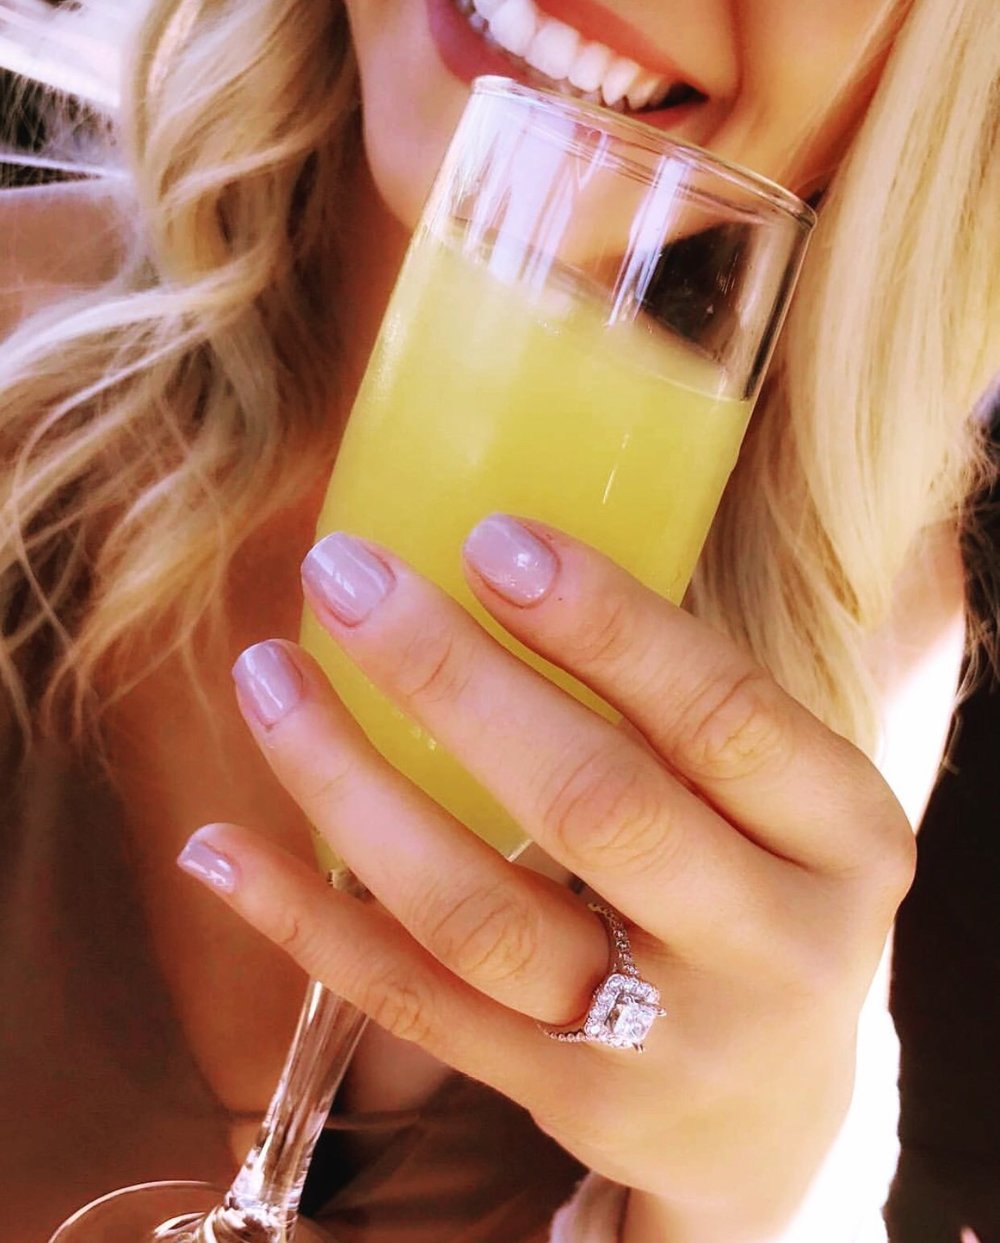 What's better than getting engaged and having a mimosa?! Congratulations, Cait, on your upcoming wedding! Check out all of her fun adventures @caitlinhosn on Instagram.